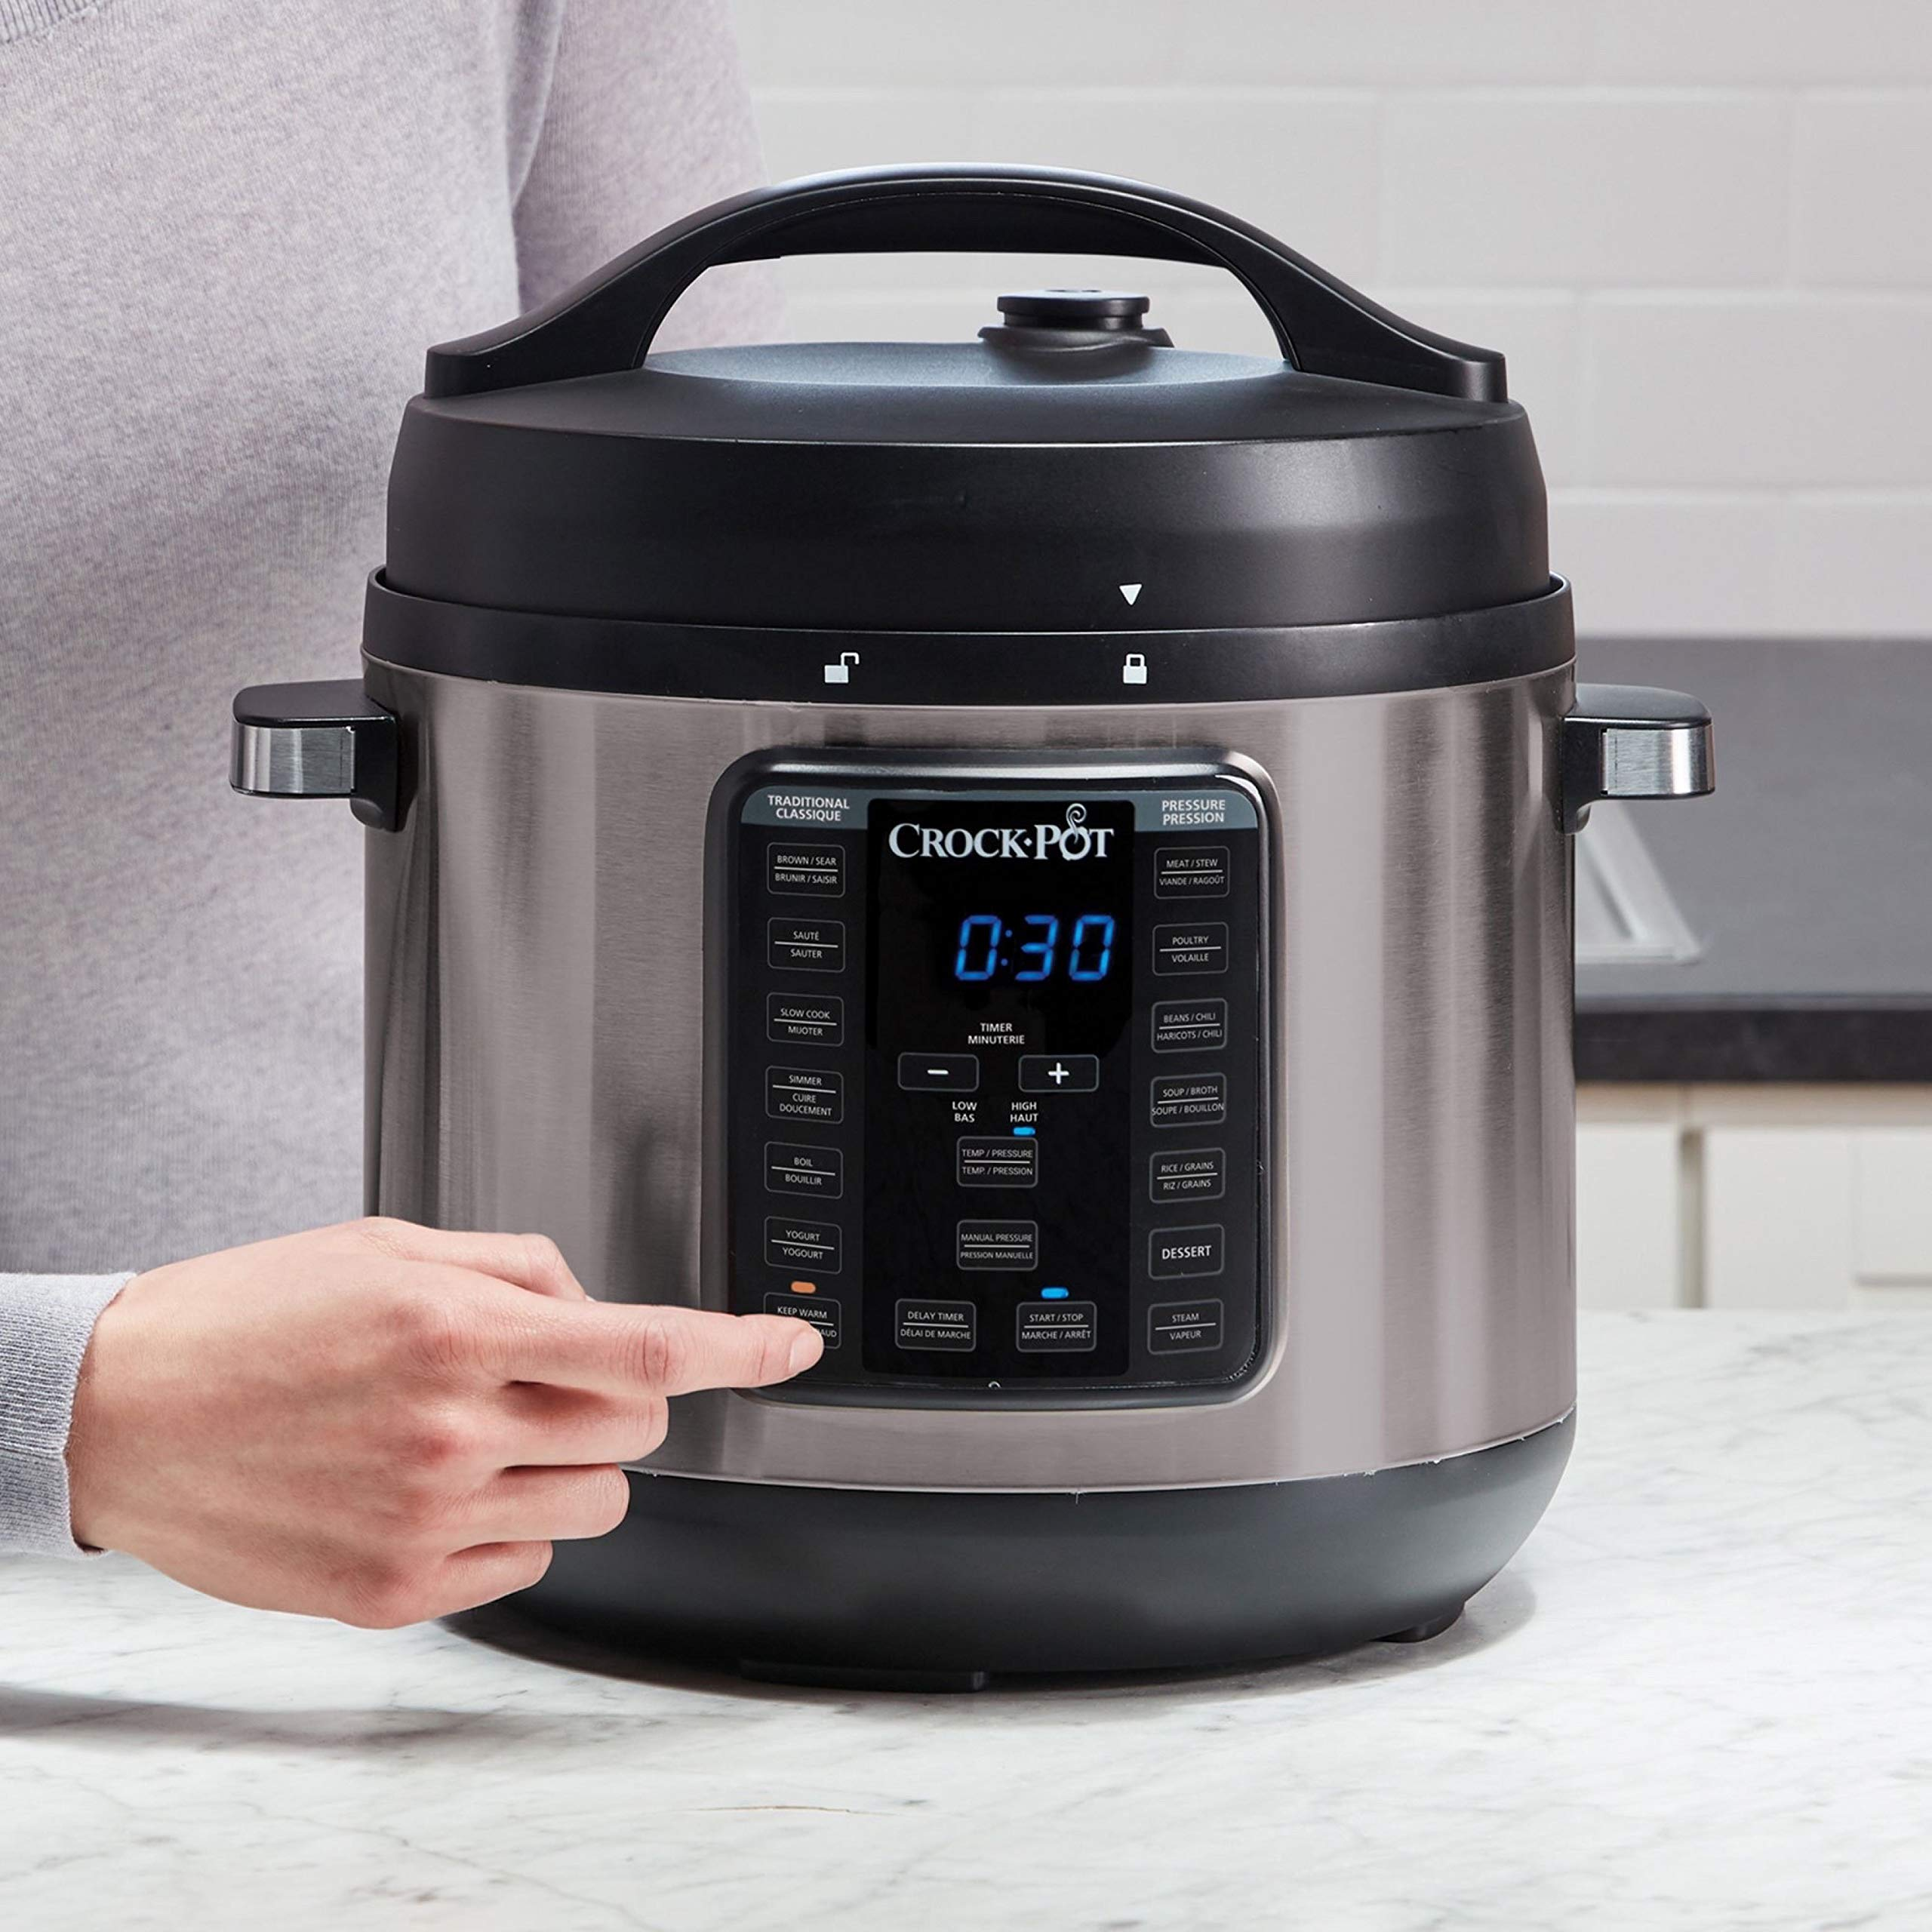 Crock-Pot 8-Quart Multi-Use XL Express Crock Programmable Slow Cooker and Pressure Cooker with Manual Pressure, Boil & Simmer, Black Stainless by Crock-Pot (Image #2)